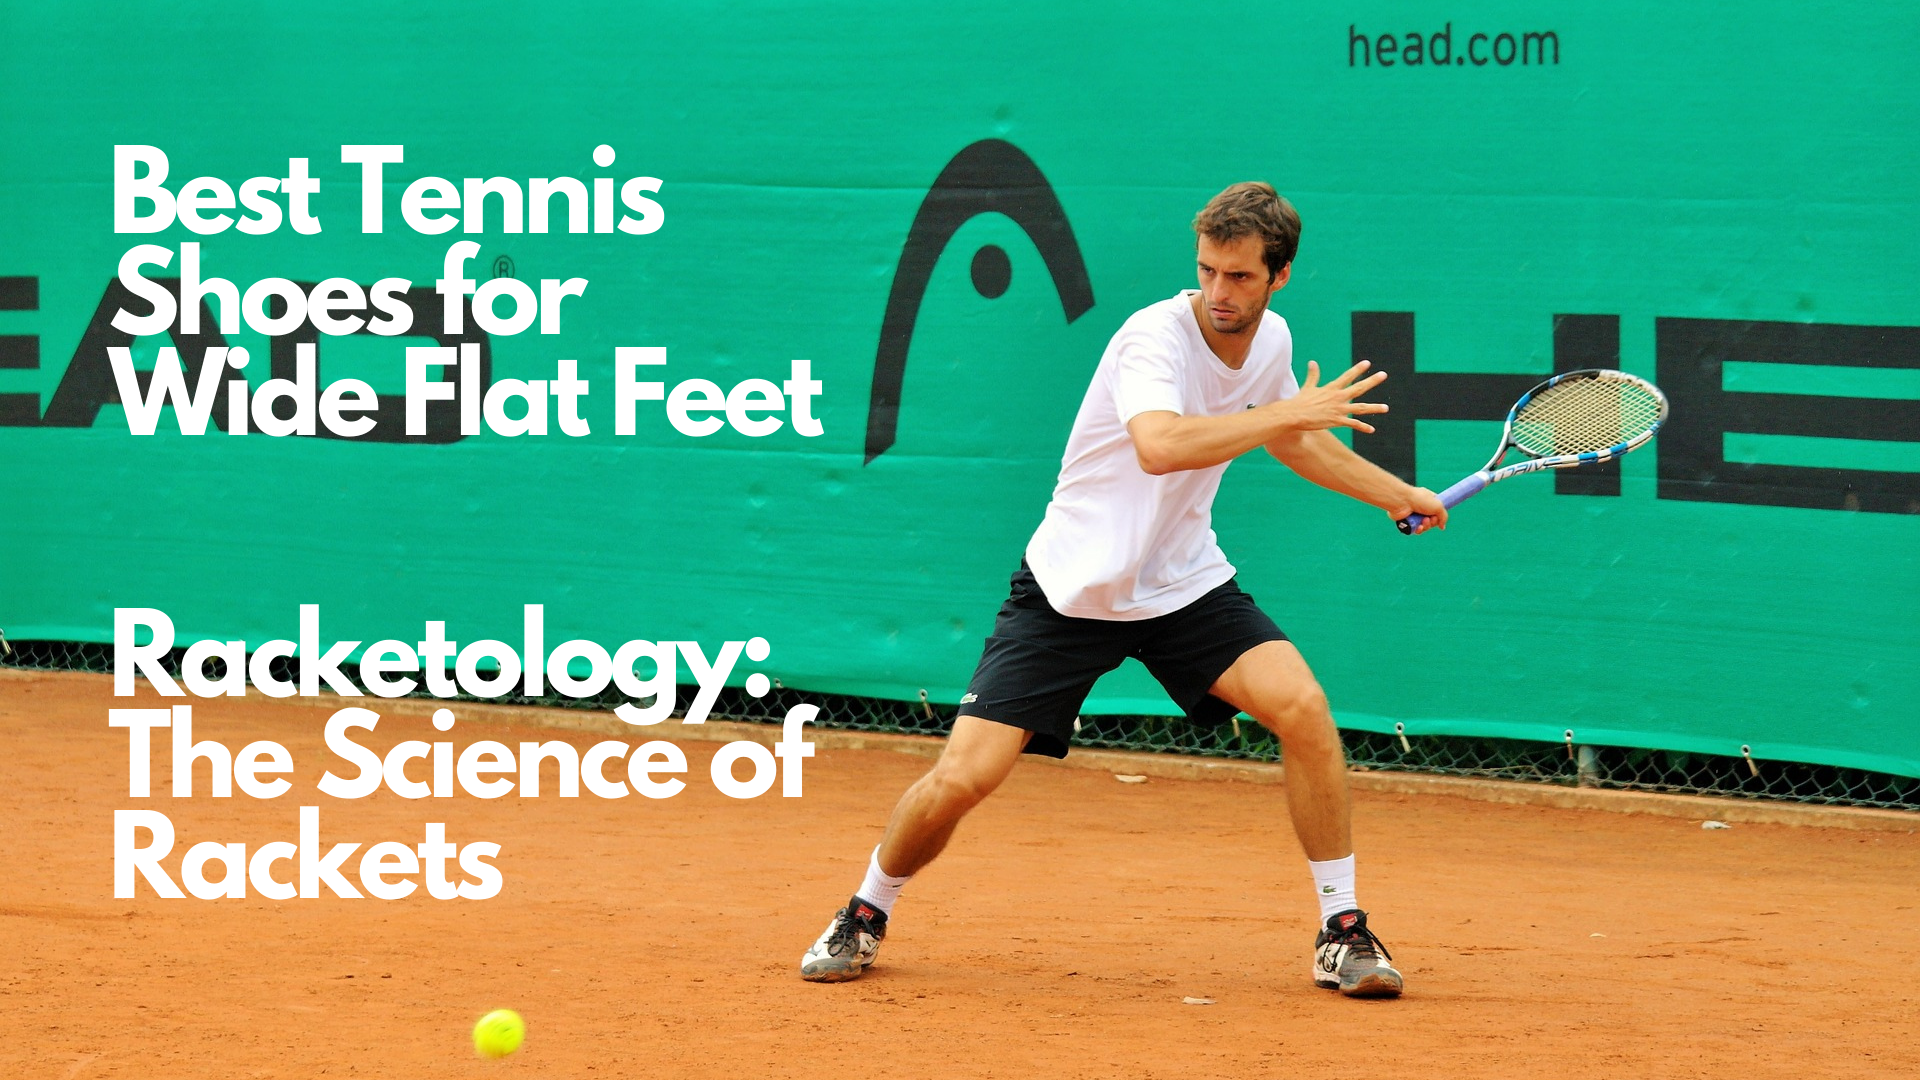 best tennis shoes for wide flat feet